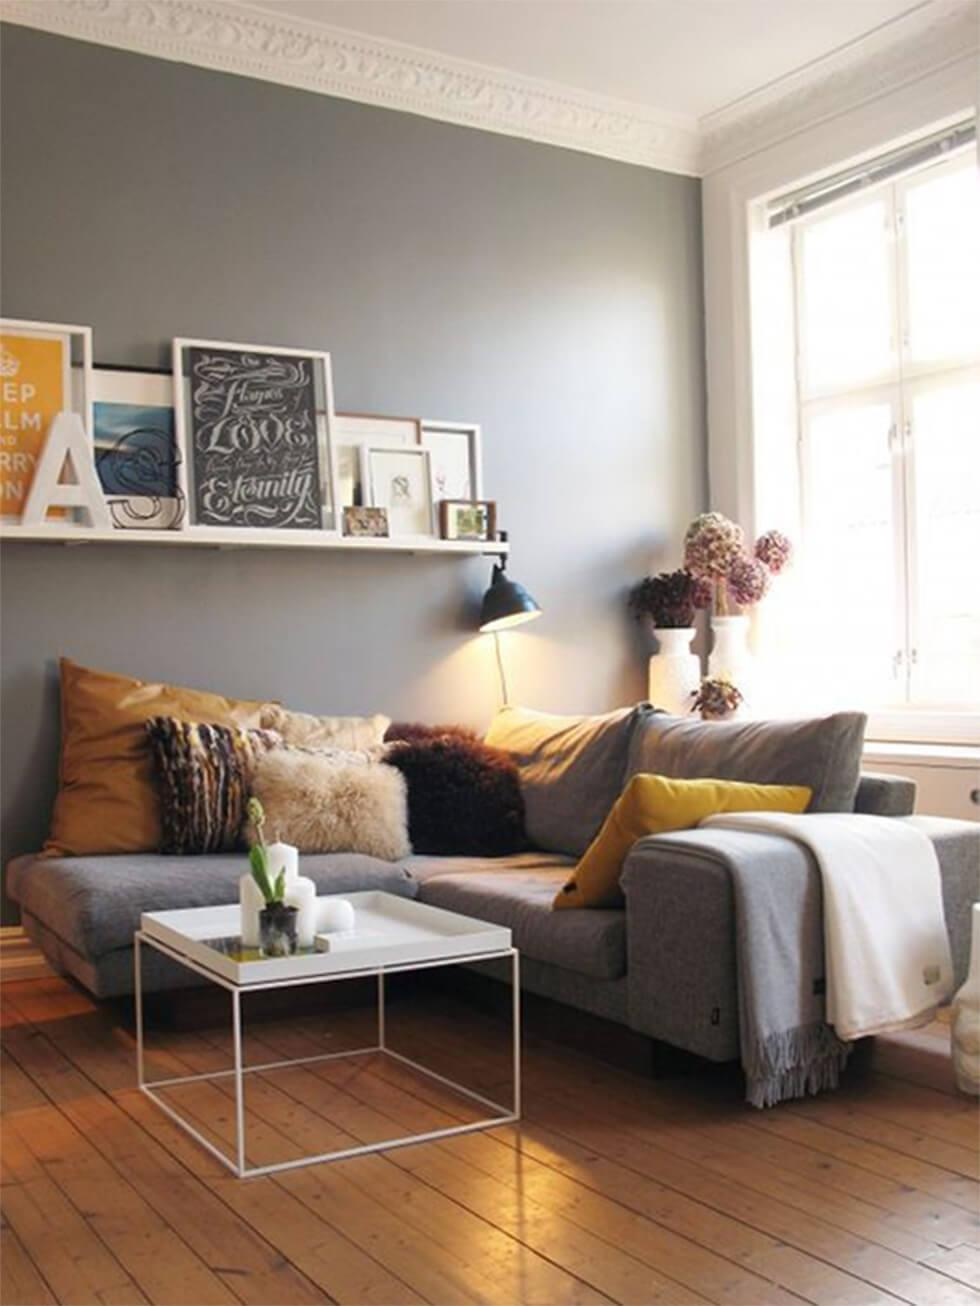 Grey corner sofa in a small living room.